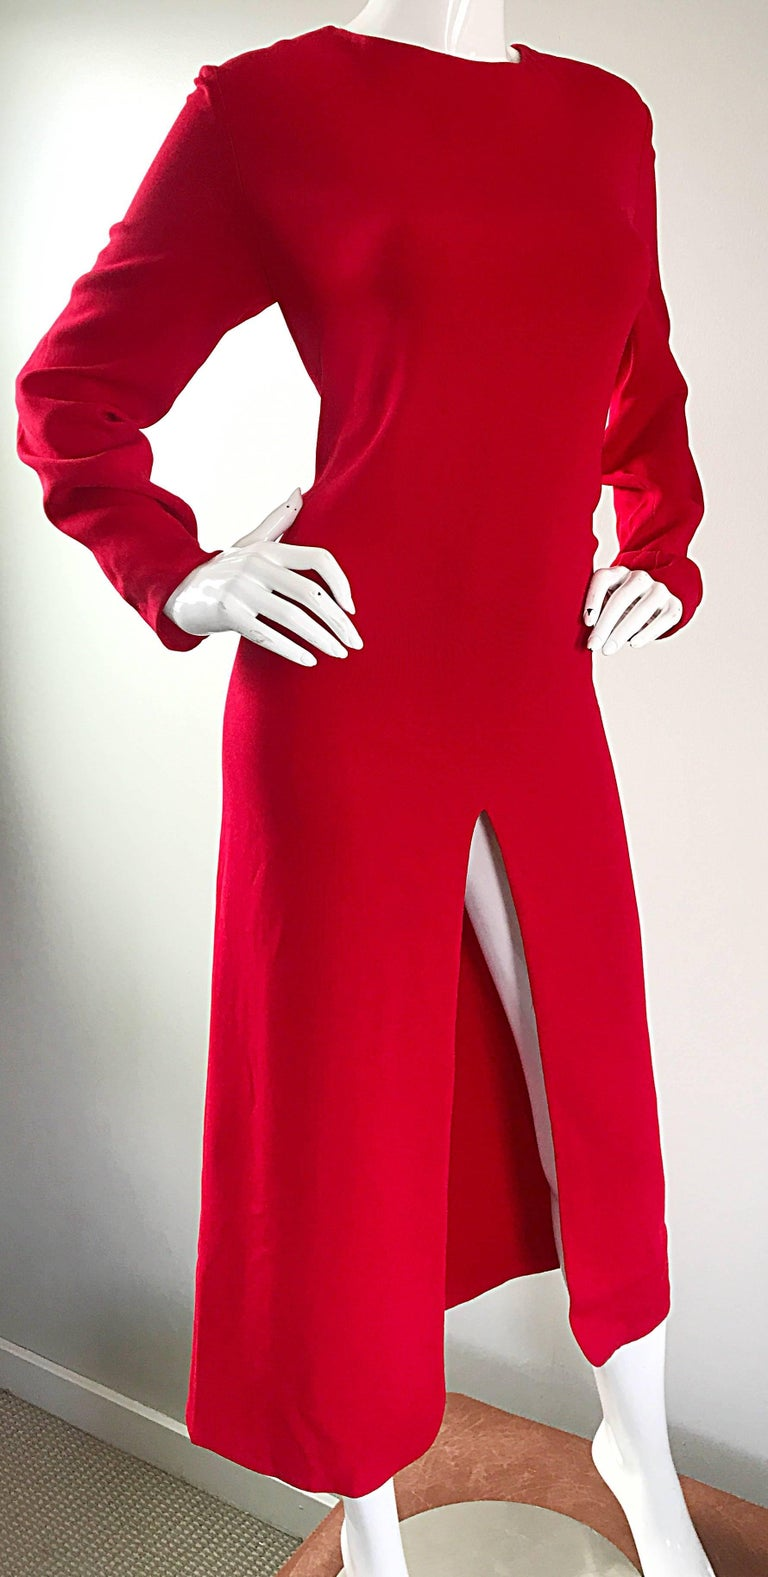 1990s Badgley Mischka Size 10 / 12 Lipstick Red Long Sleeve 90s Evening Dress 6